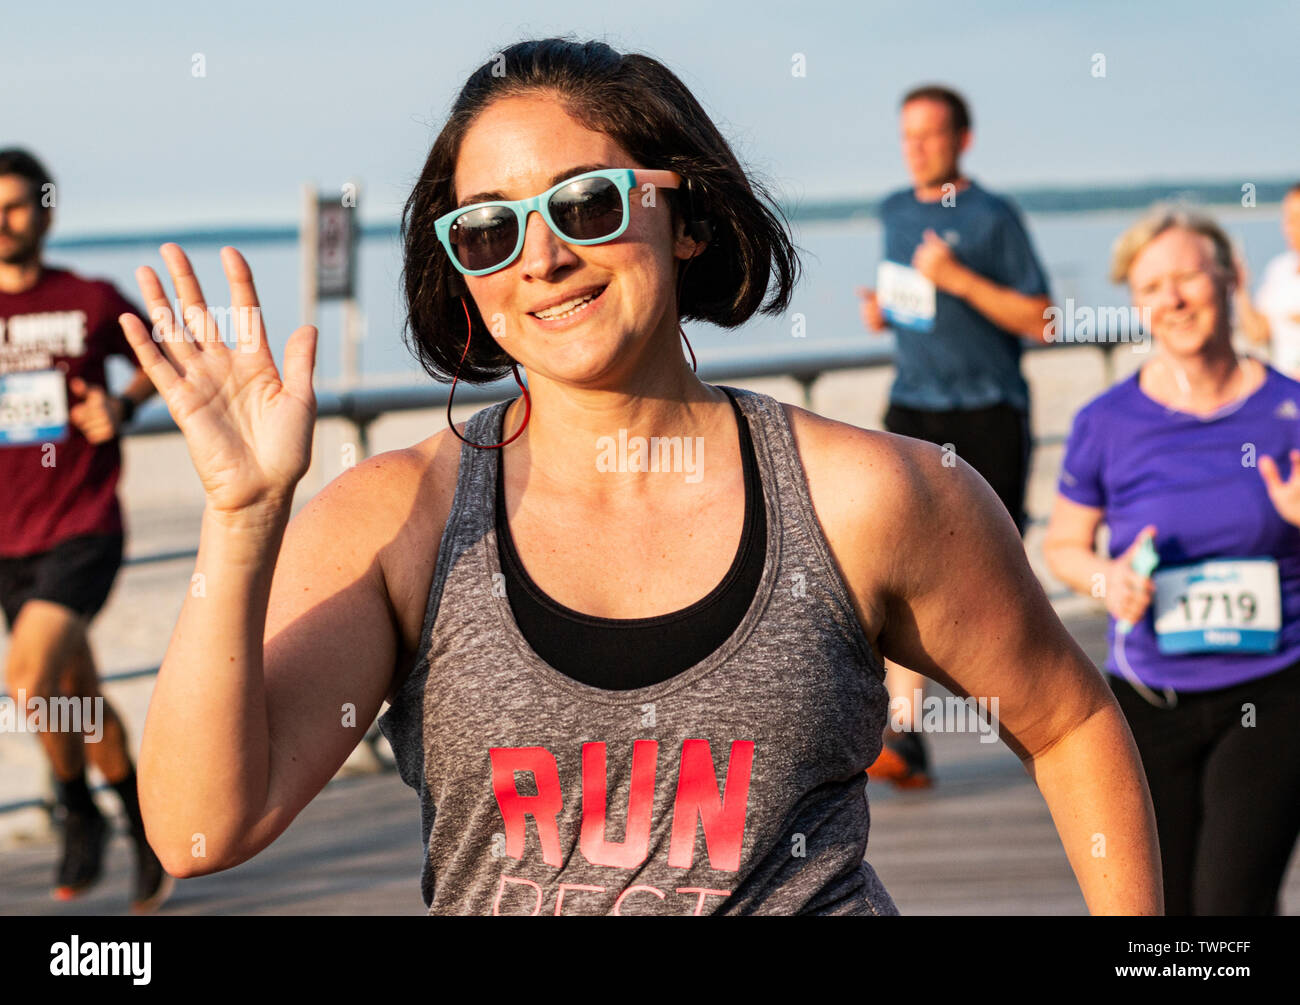 Kings Park, New York, USA - 17 June 2019: A women wearing aqua blue sunglasses waving and smiling at camera during a 10K running race the boardwalk at - Stock Image